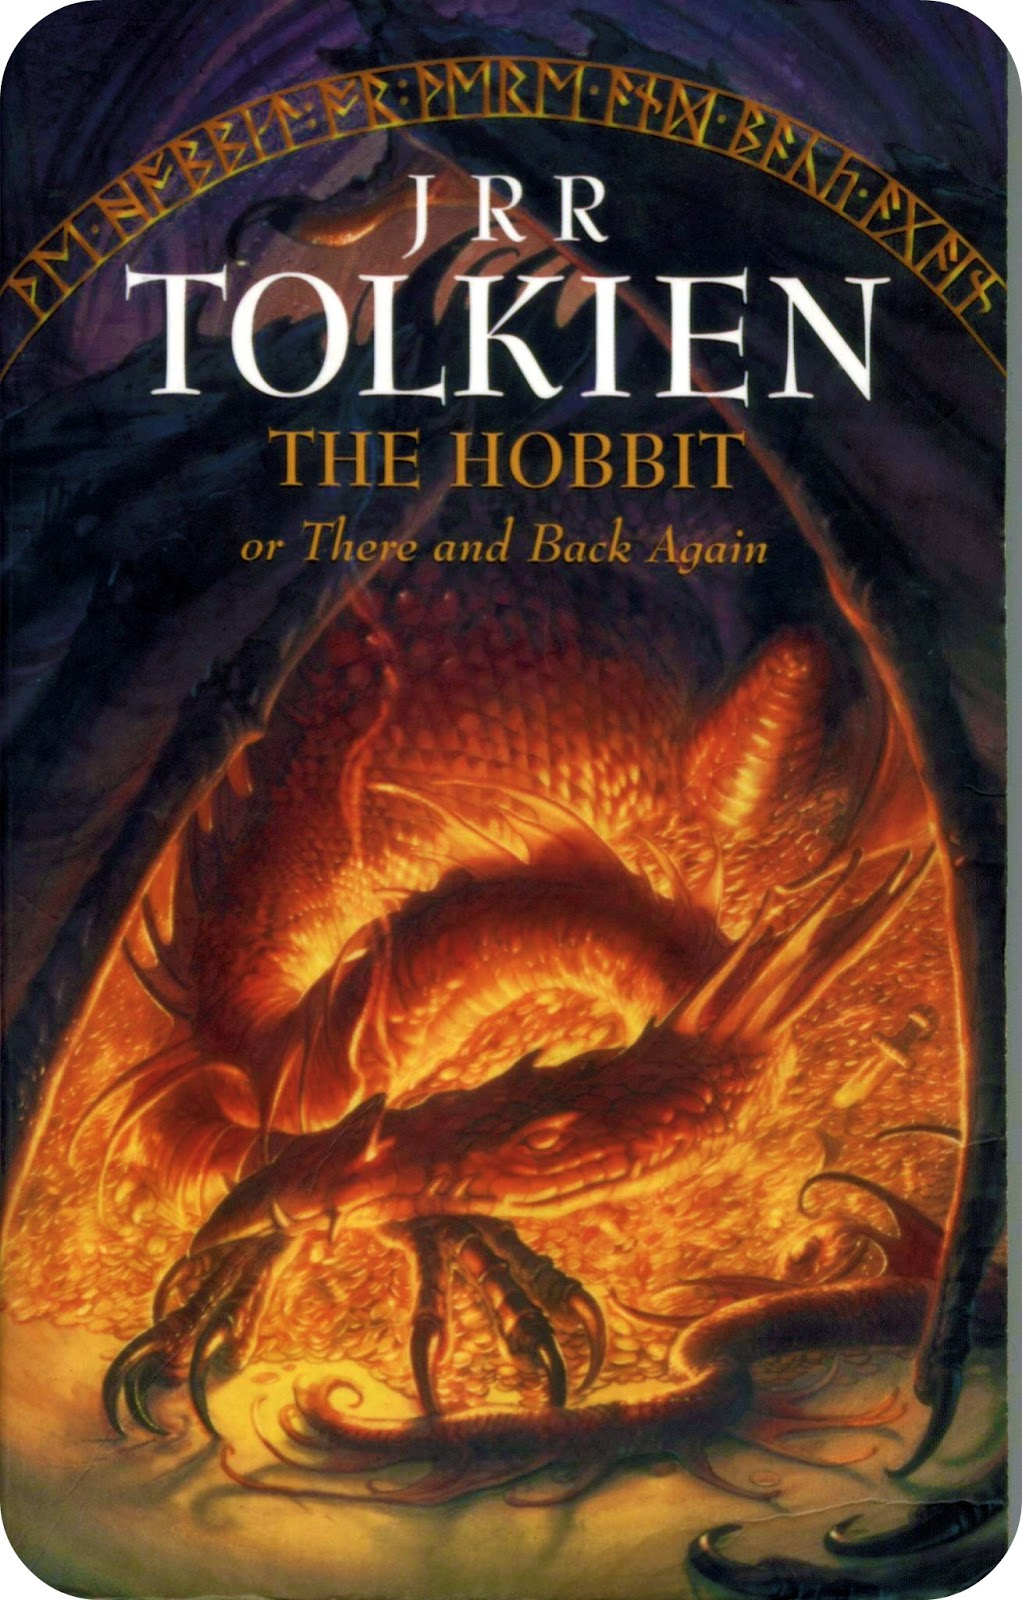 an analysis of the silmarillion and the hobbit and the trilogy the lord of the rings by j r r tolkie When the eccentric hobbit bilbo baggins leaves his the lord of the rings jrr about the lord of the rings trilogy character list summary and analysis:.